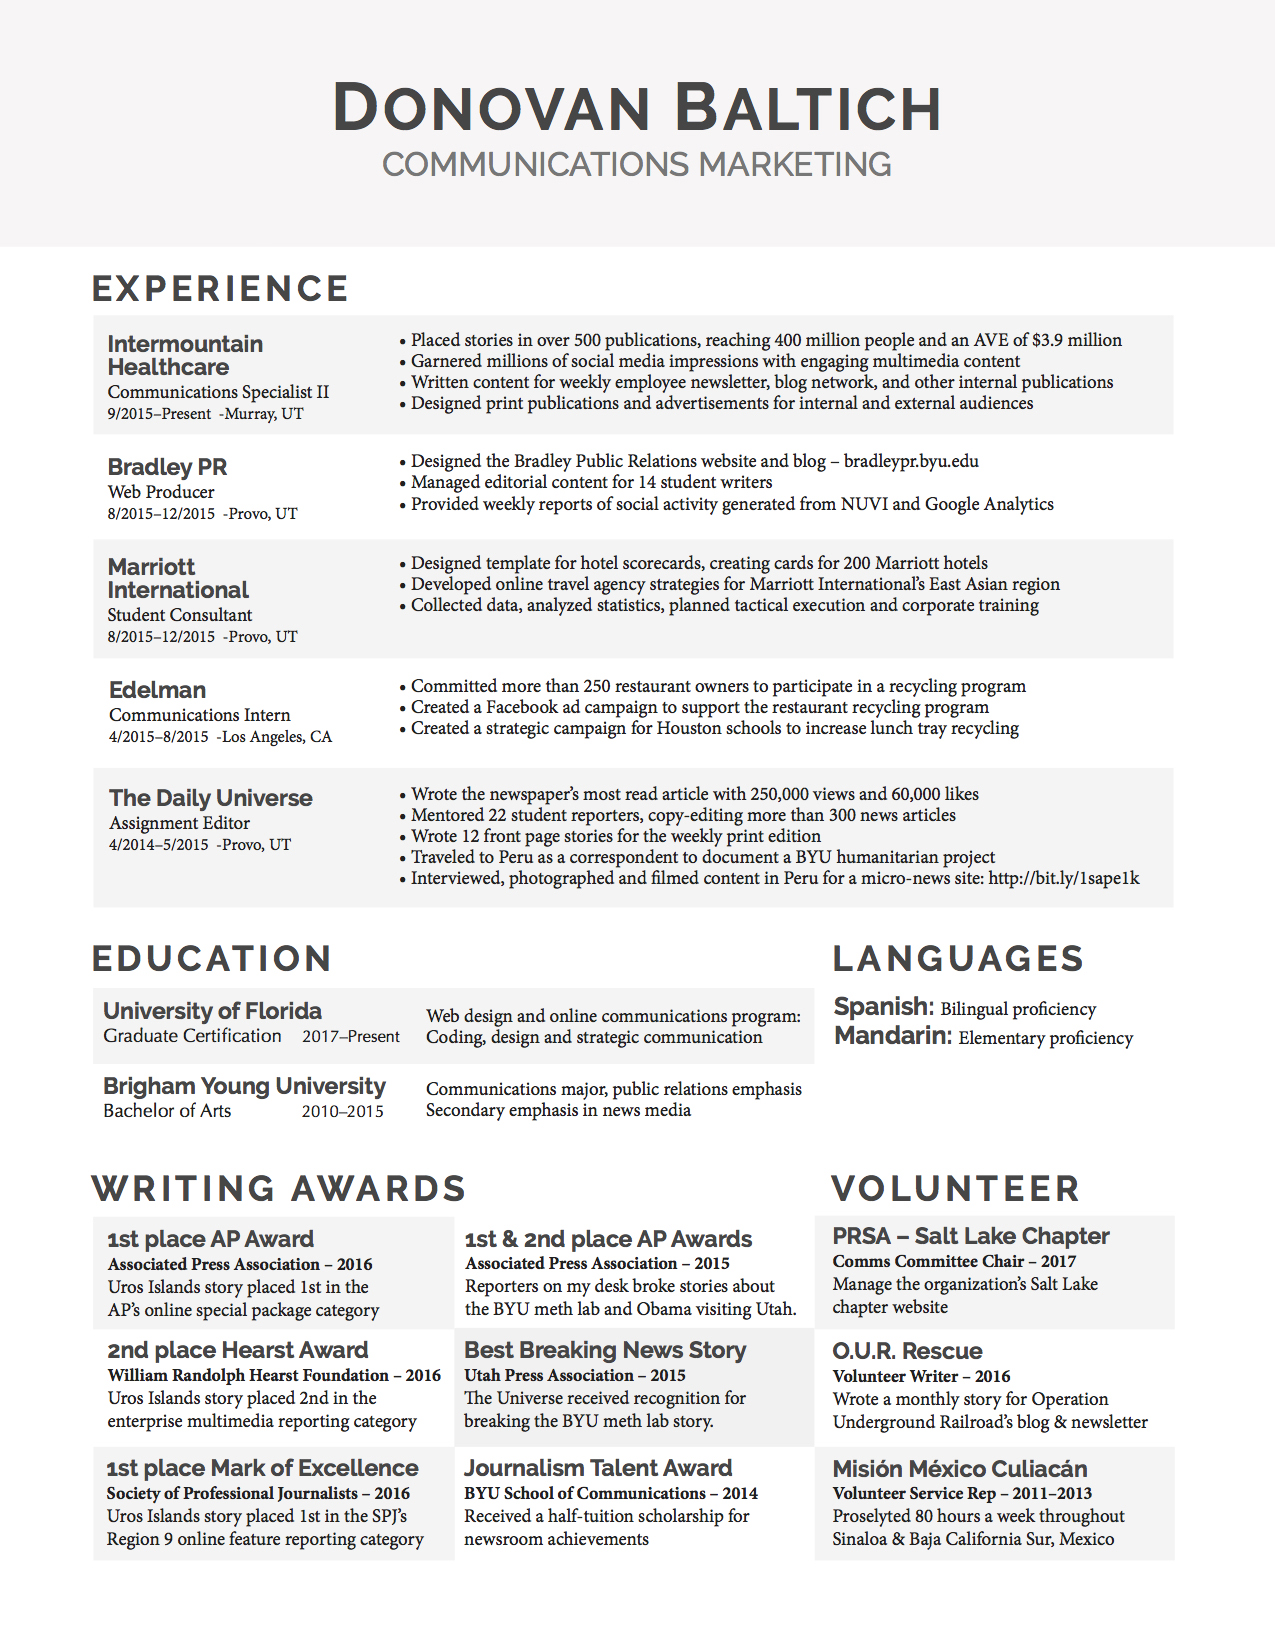 rsum donovan baltich - Web Producer Resume